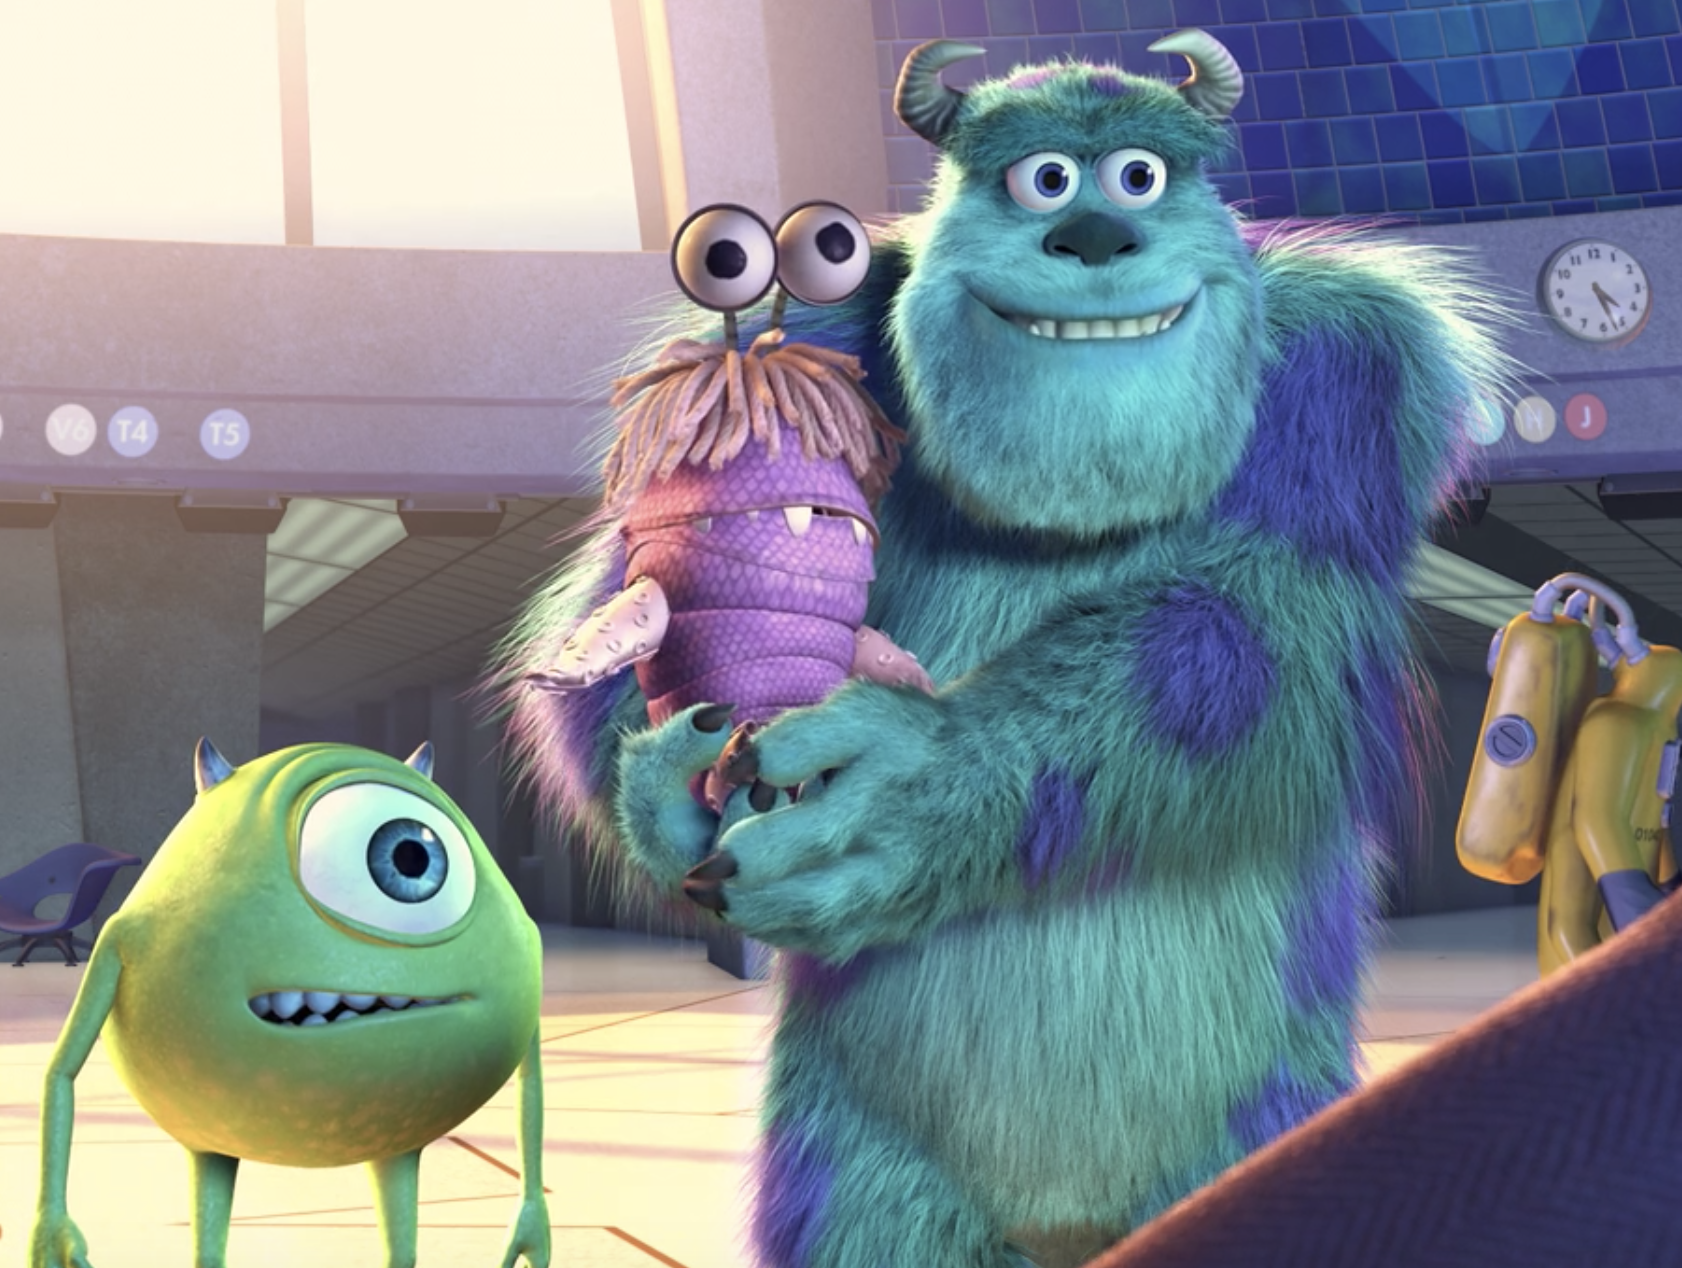 Sulley holding Boo dressed up like a monster while he and Mike smile awkwardly